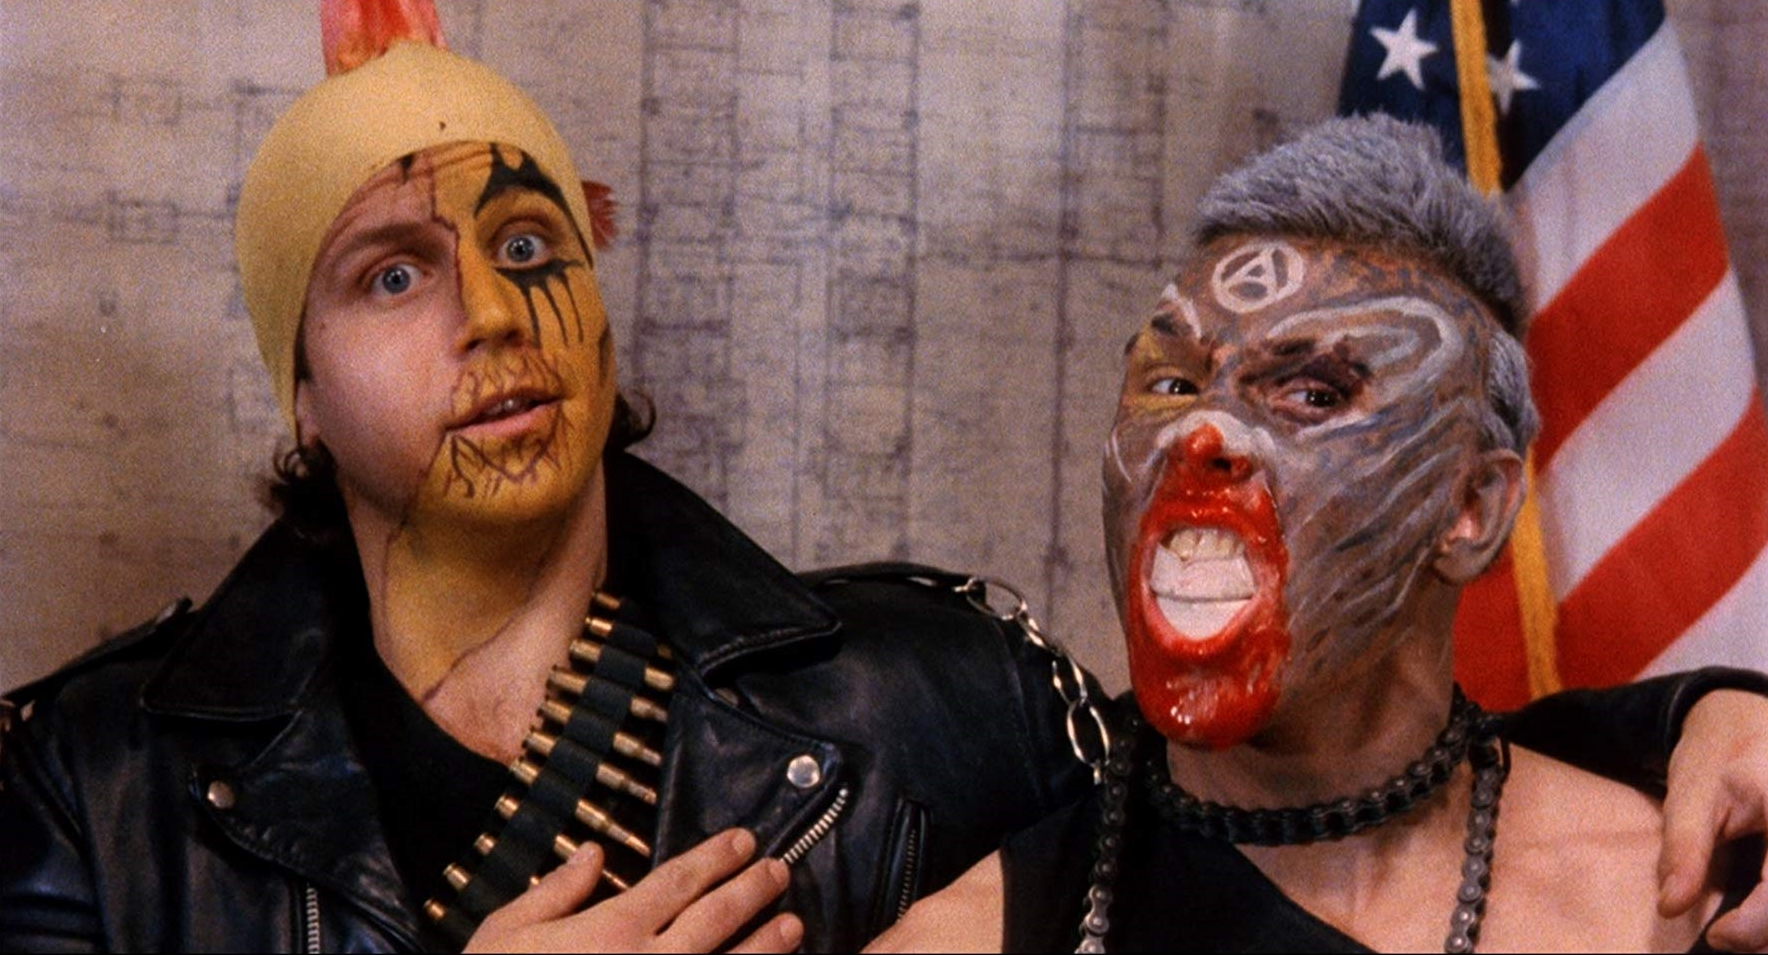 WHY THE WORLD SHOULD LOVE TROMA?